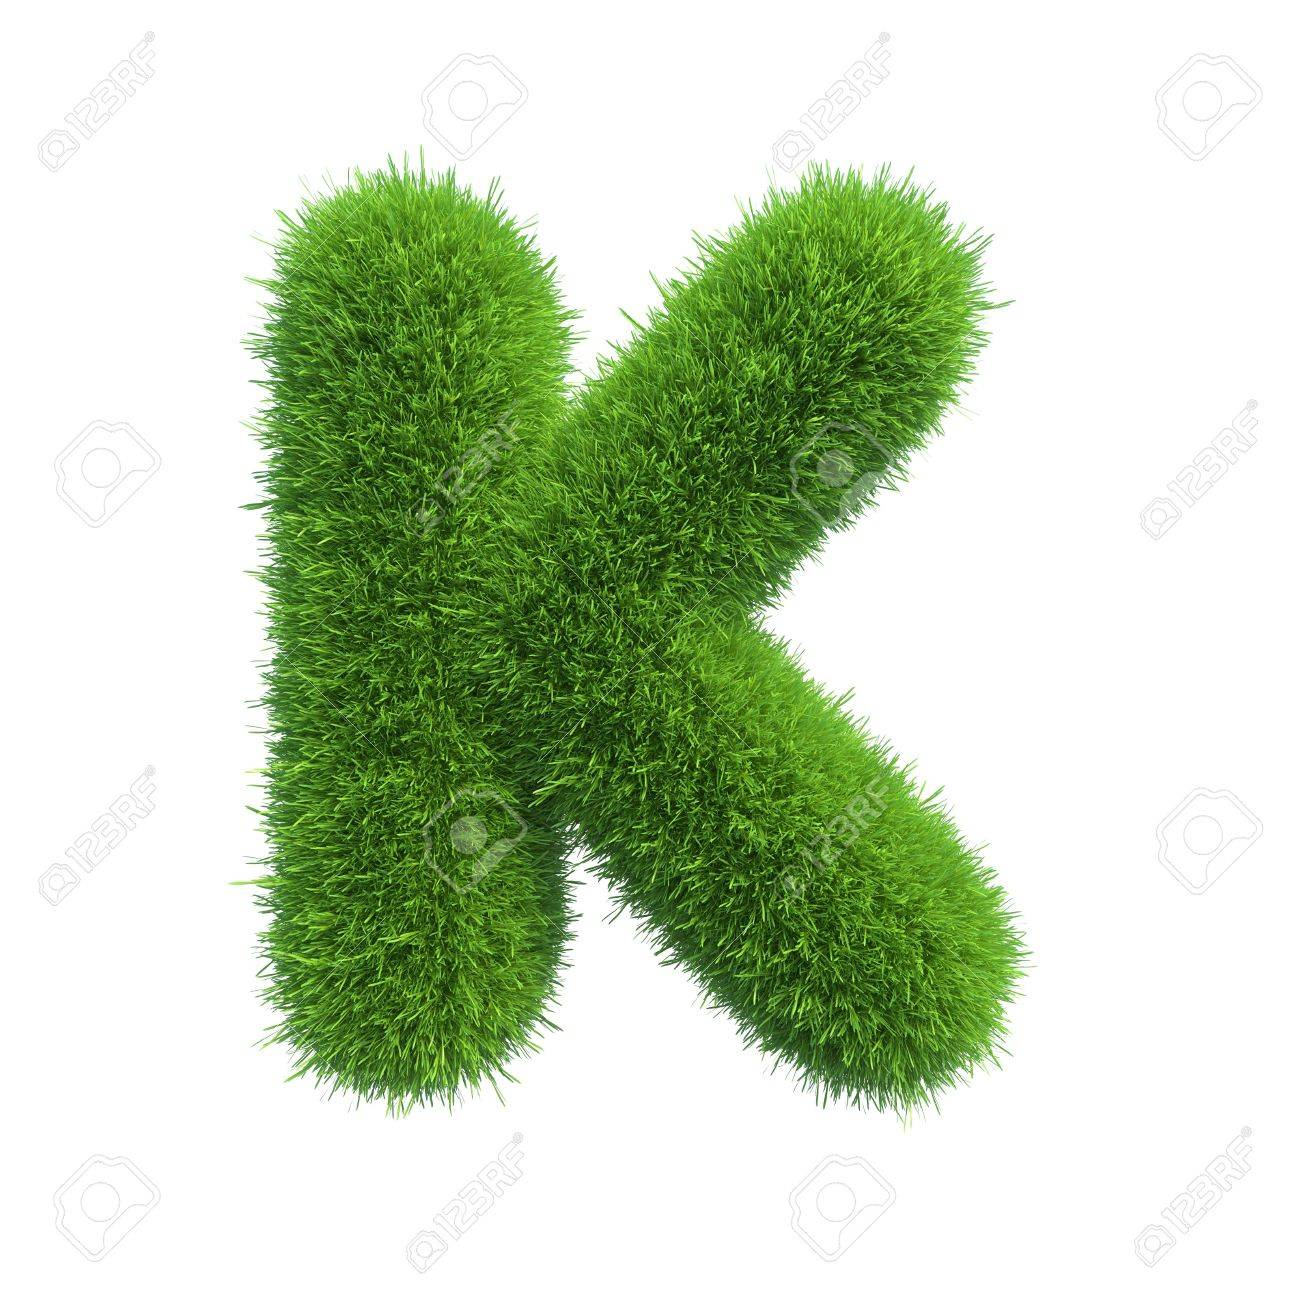 Letter of green fresh grass isolated on a white background - 34449012